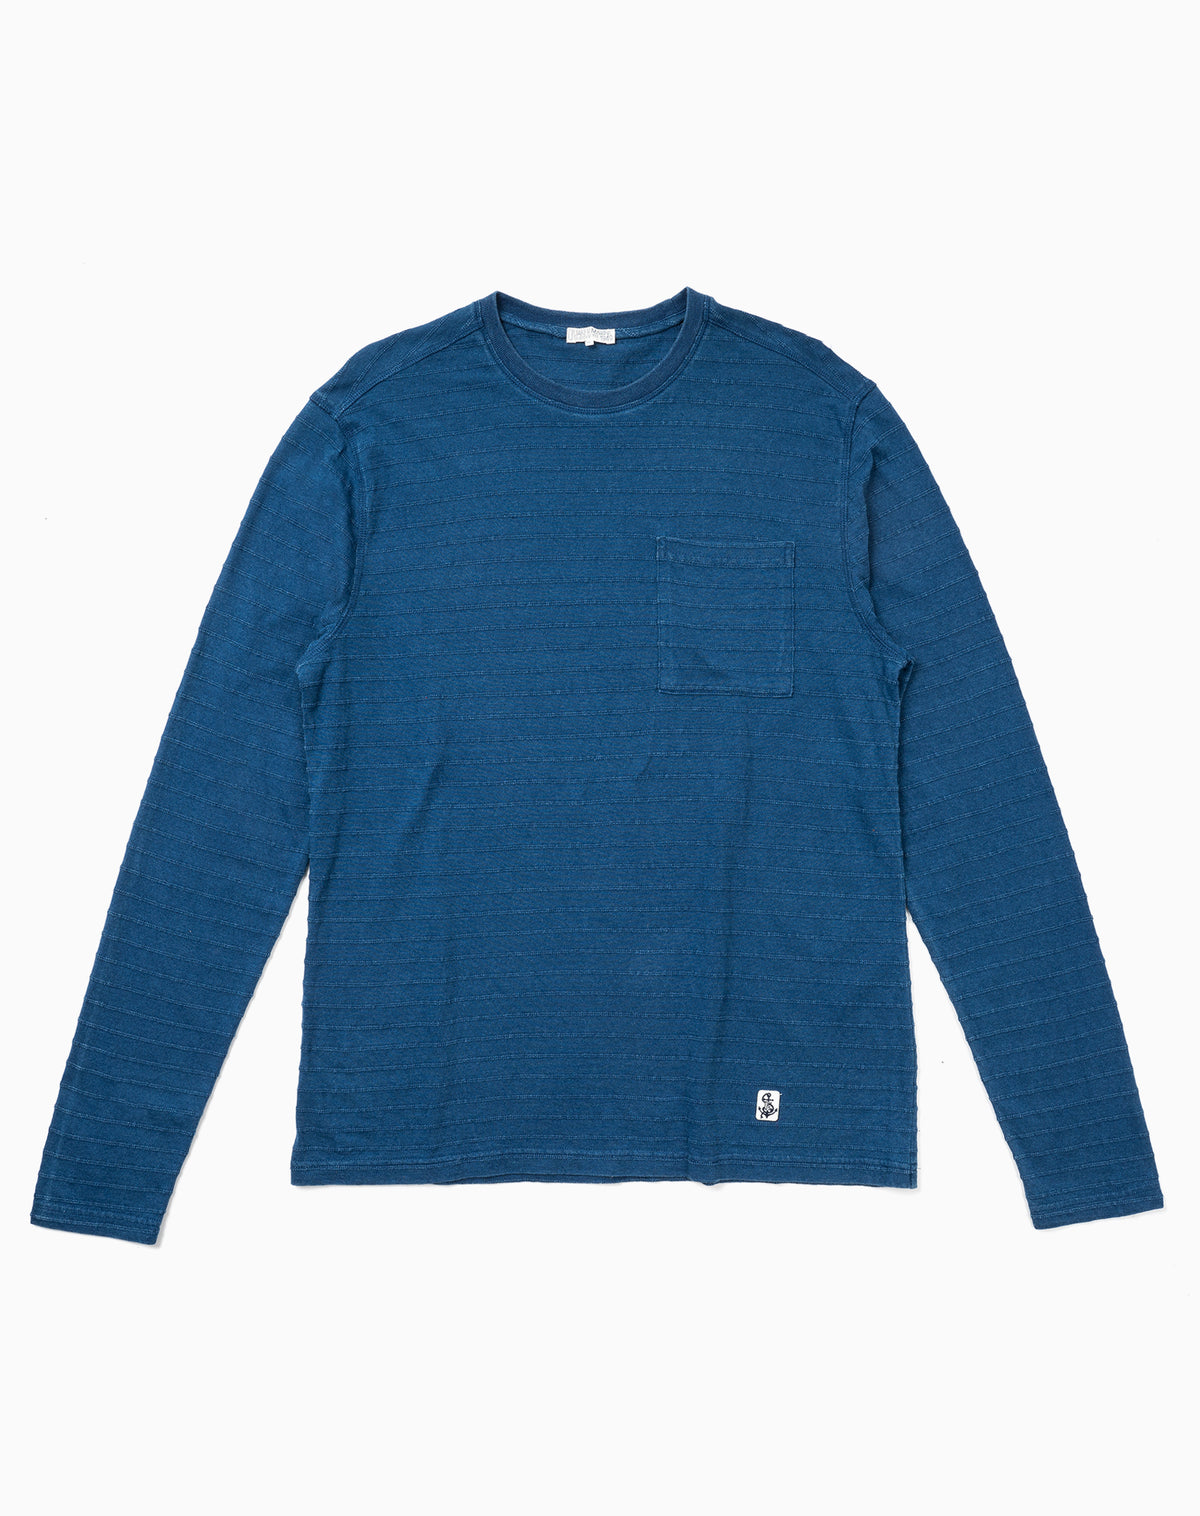 Long Sleeve Indigo Tee in Tonal Jacquard Stripe